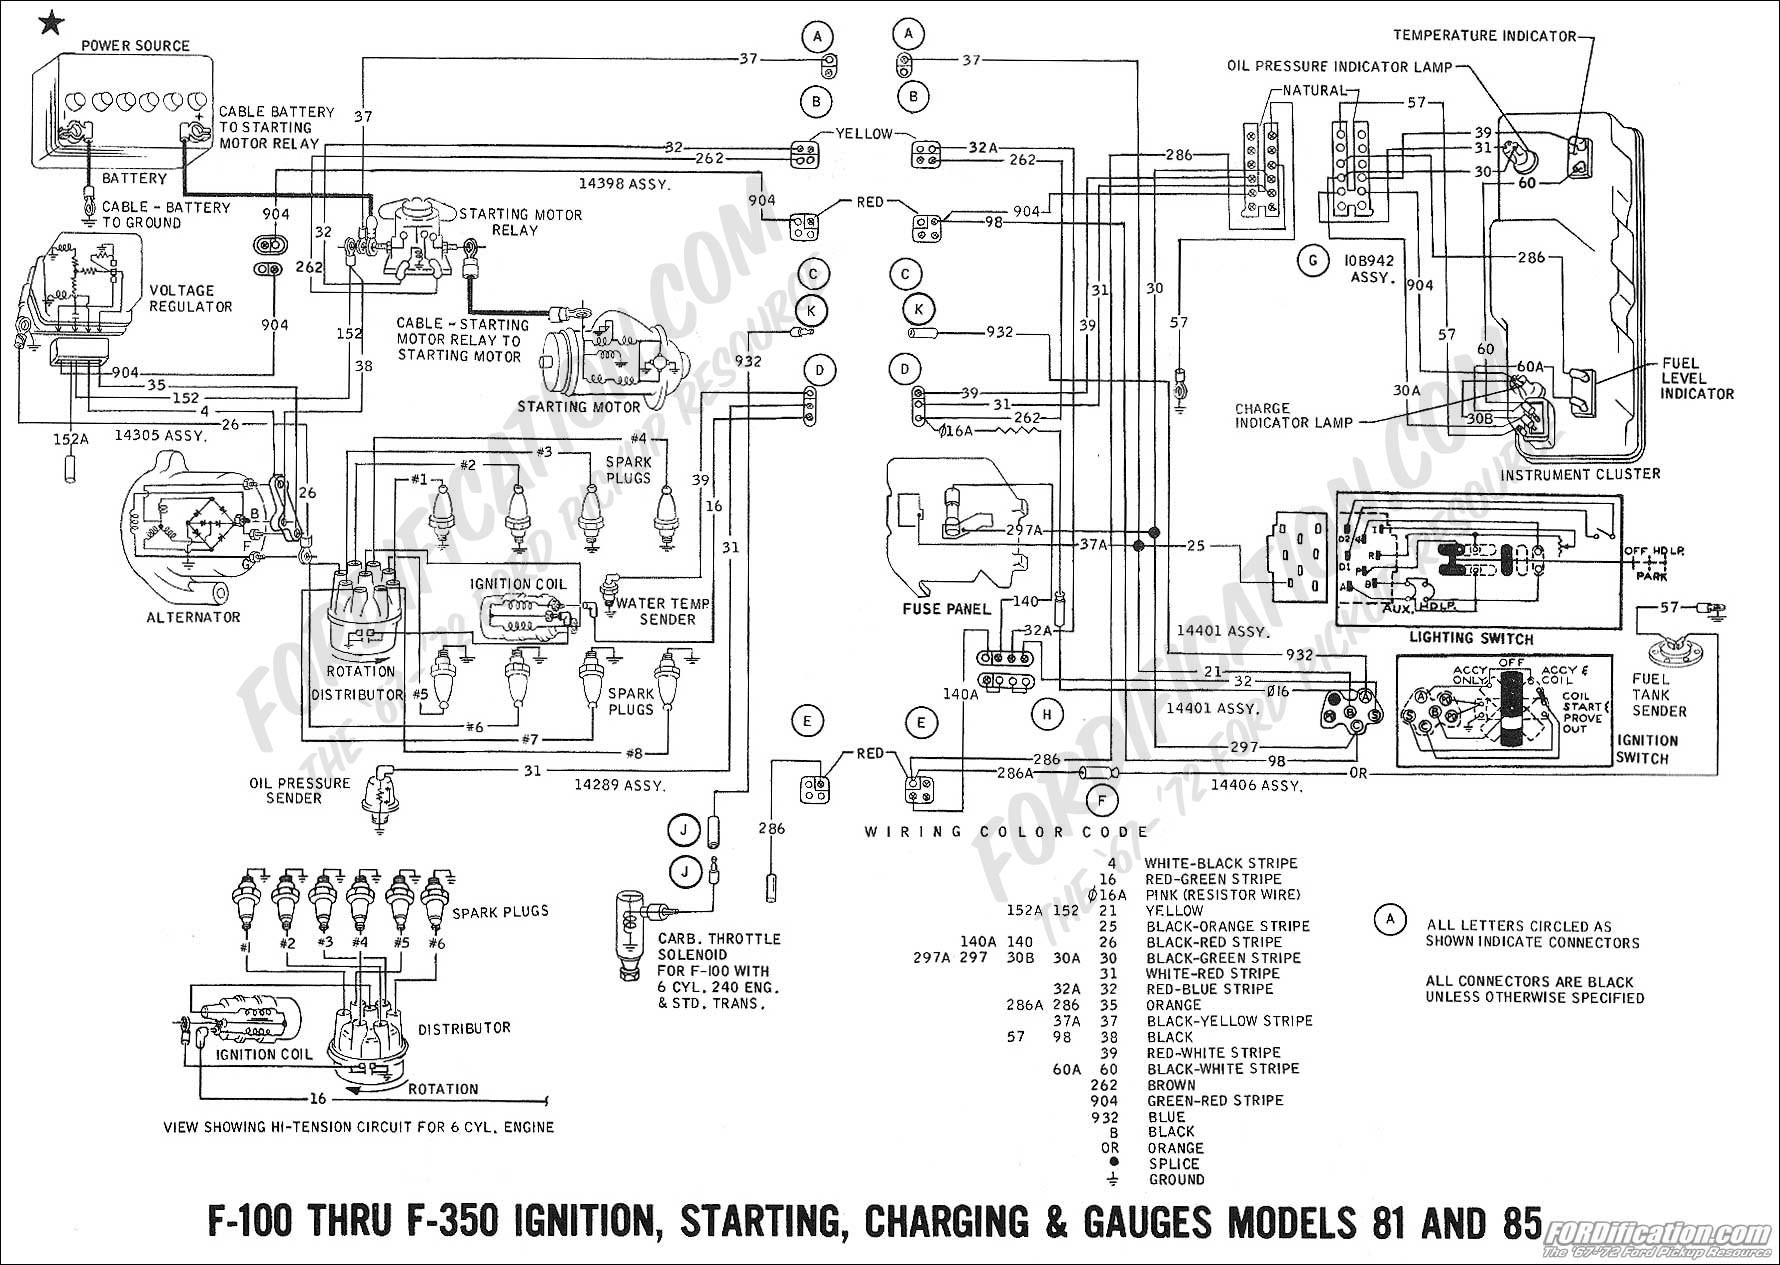 1973 ford truck wiring diagram